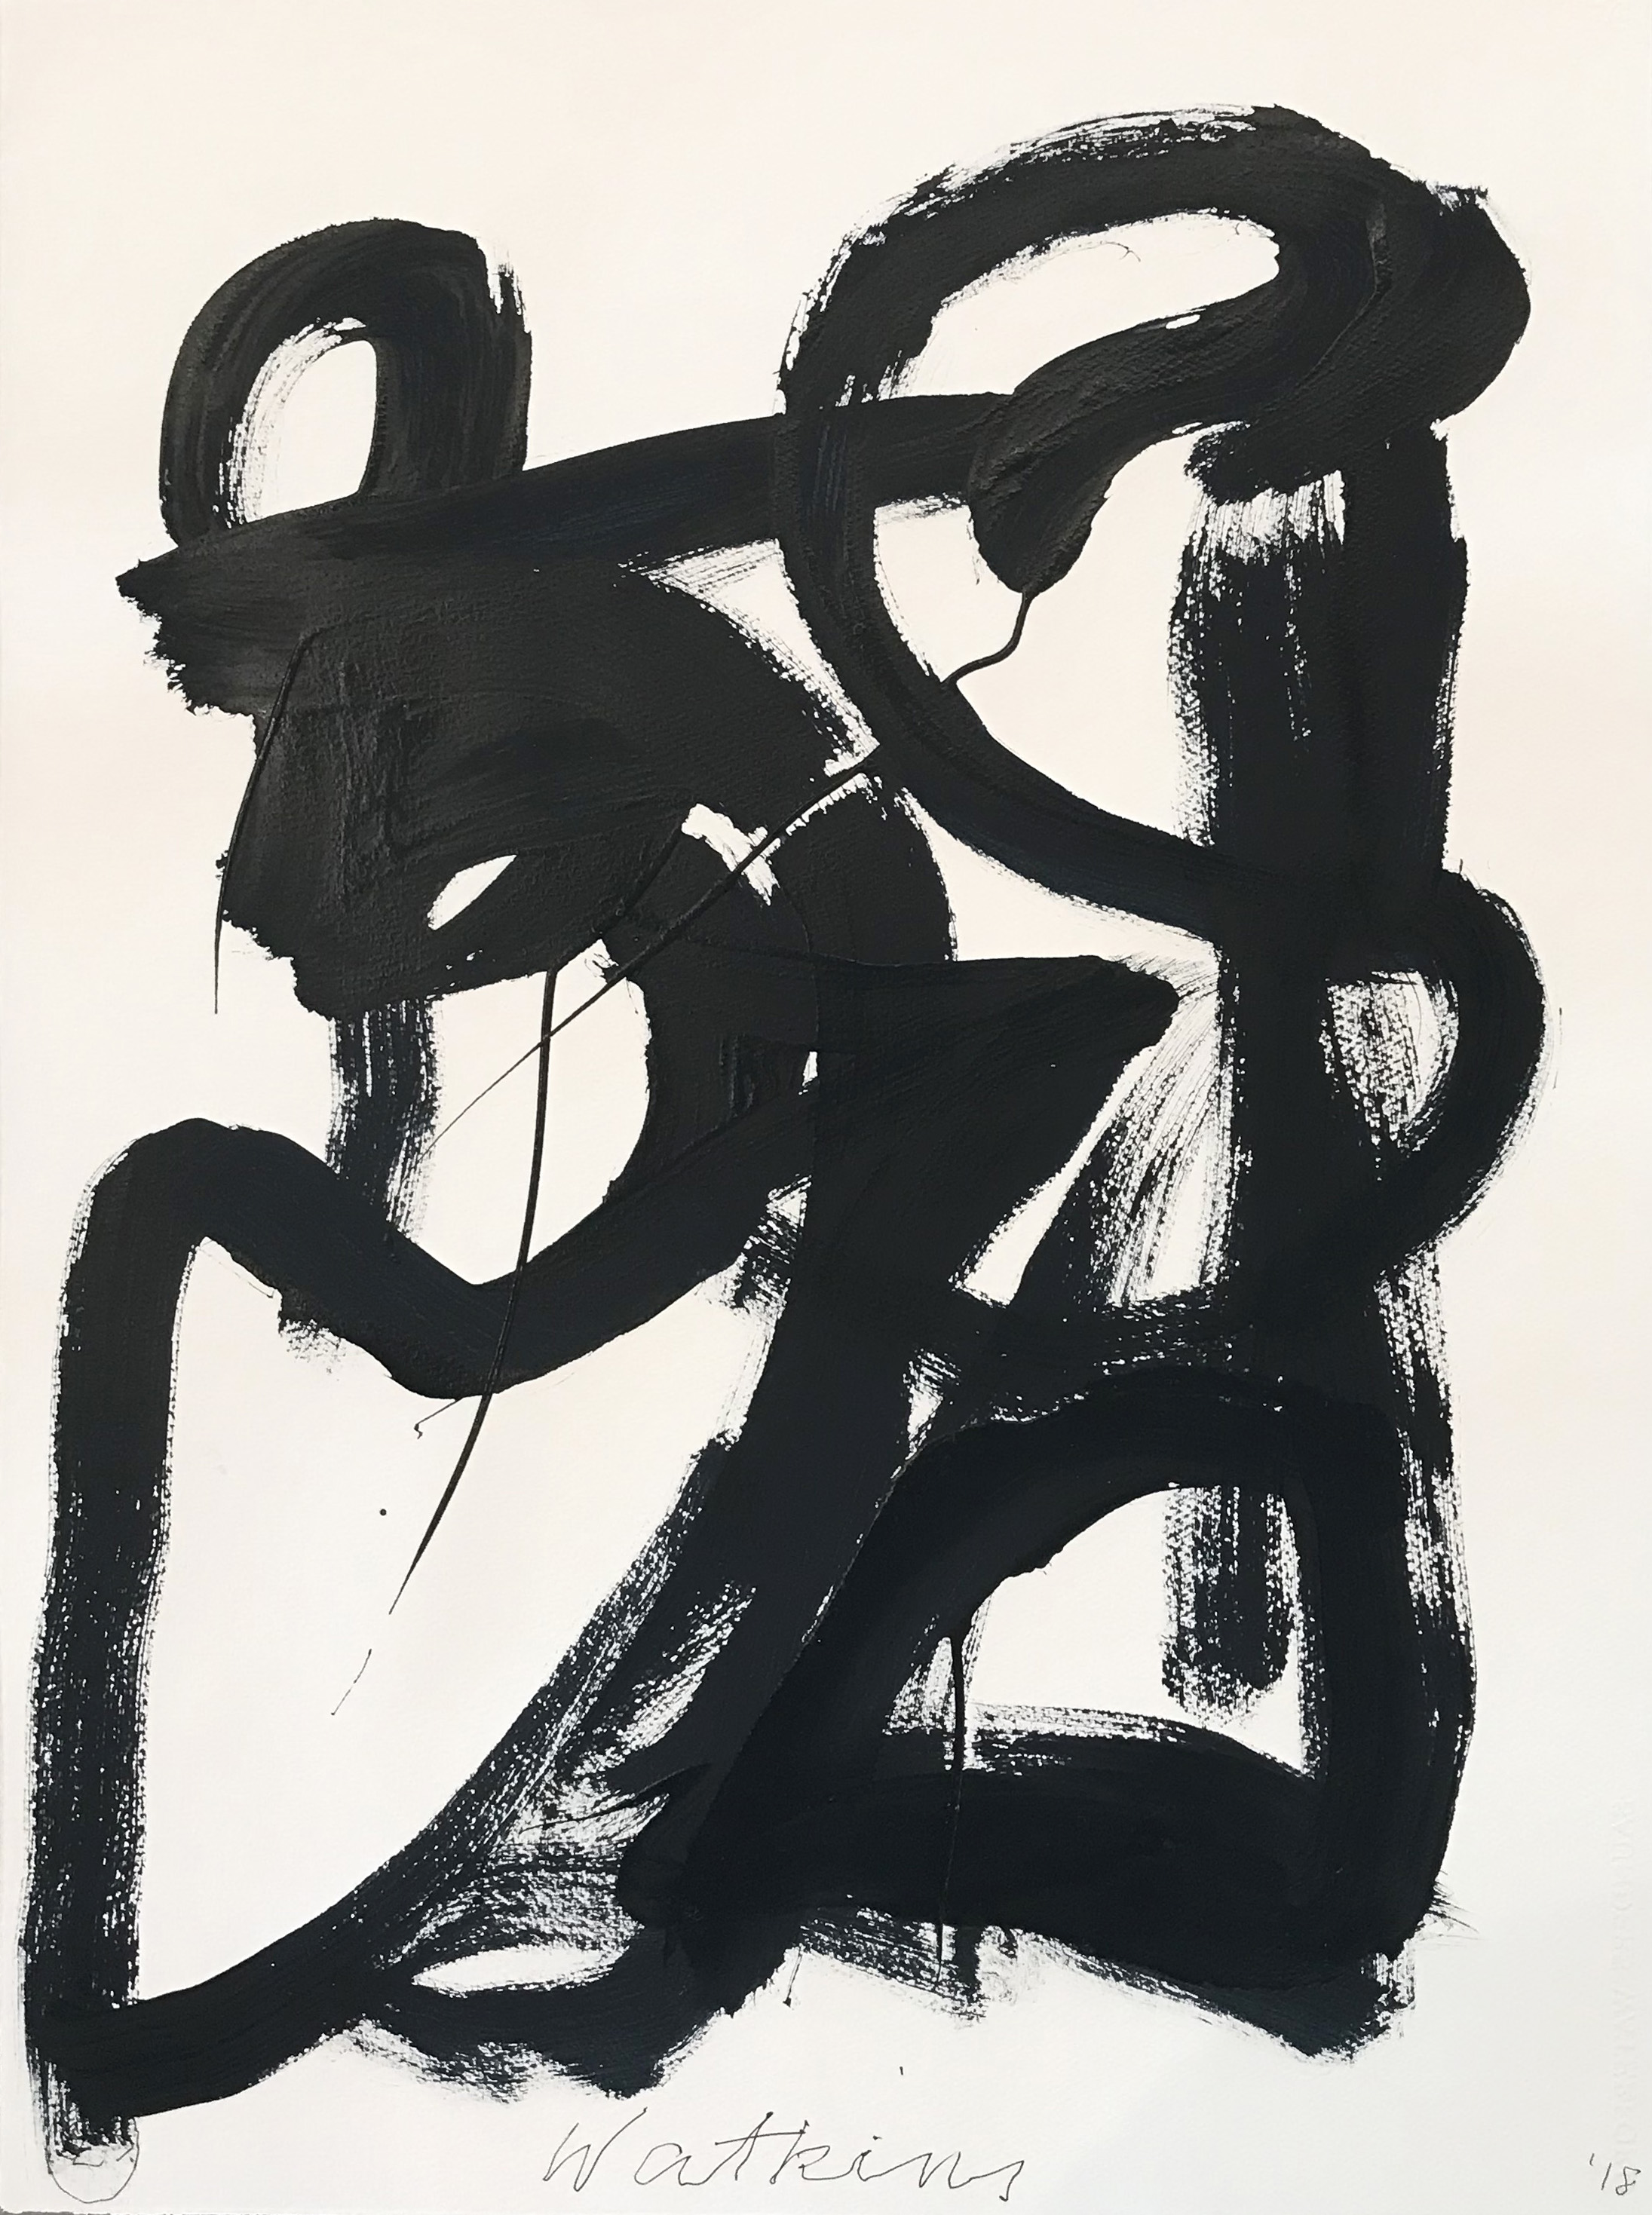 DICK WATKINS  Untitled drawing 23 , 2018 acrylic on 300gsm paper 76 x 56 cm